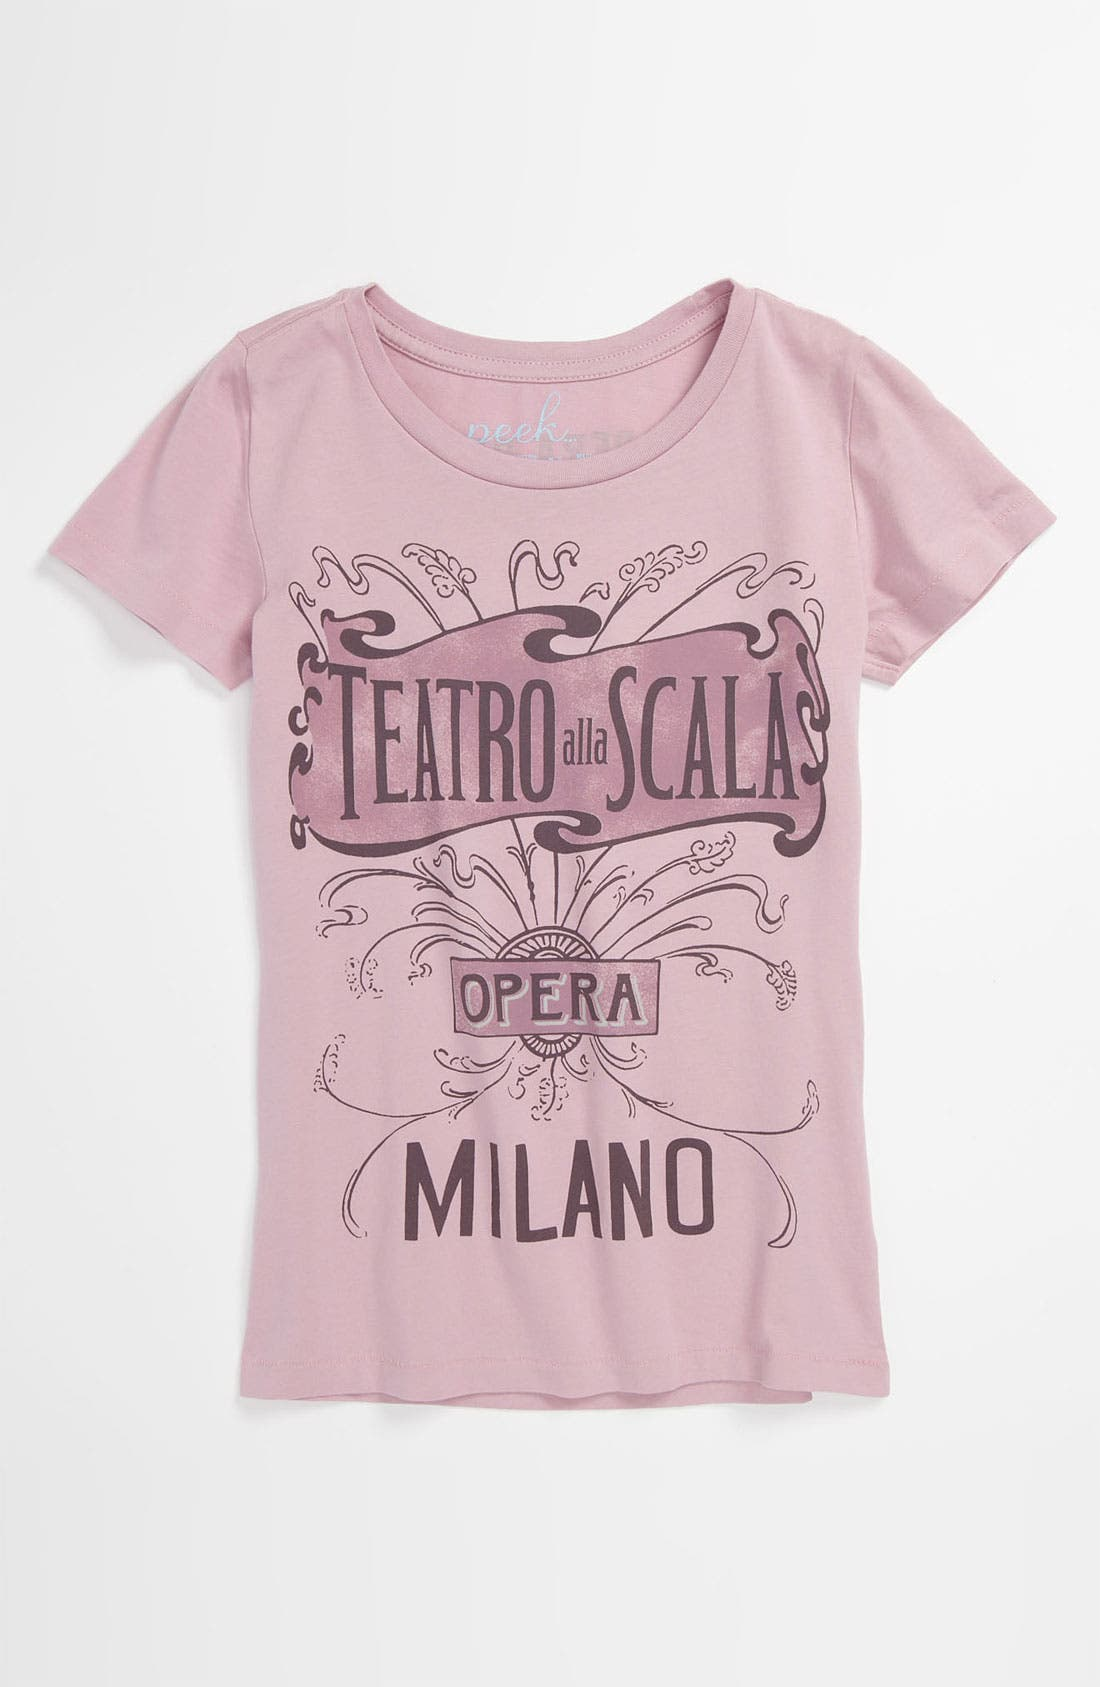 Alternate Image 1 Selected - Peek 'Teatro' Tee (Toddler, Little Girls & Big Girls)